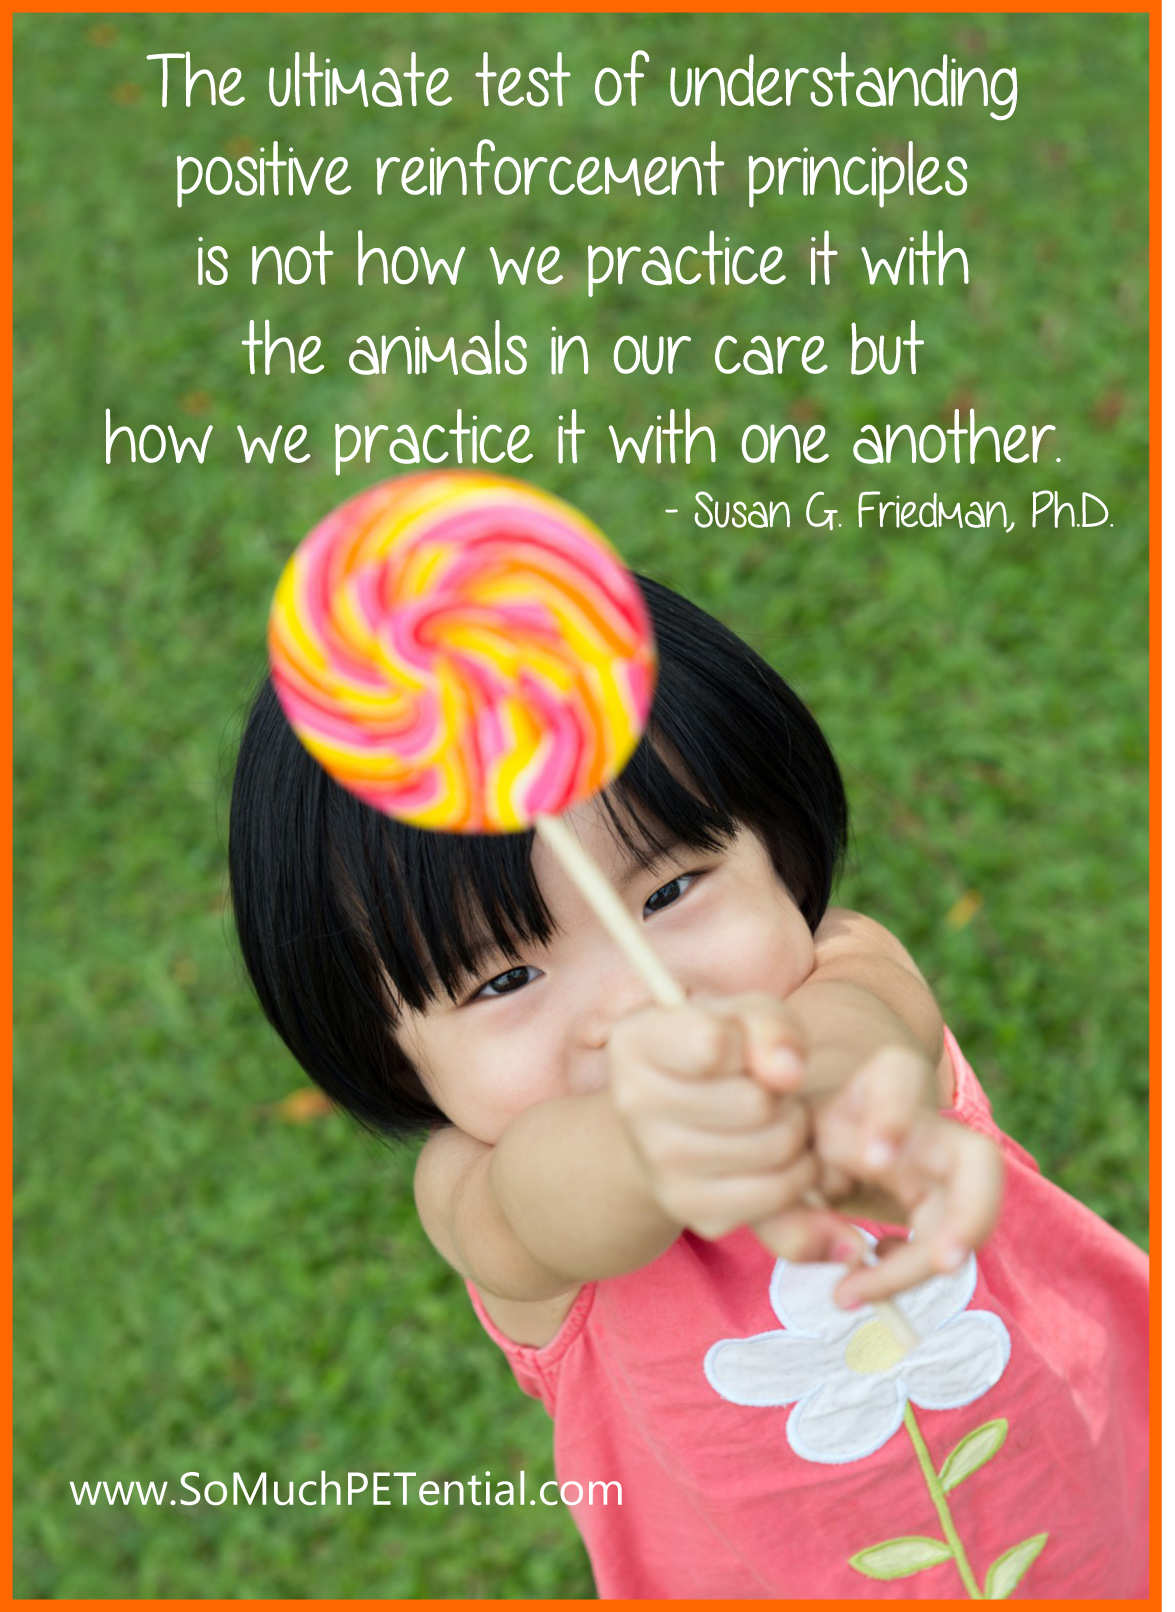 How Do You Practice Positive Reinforcement?